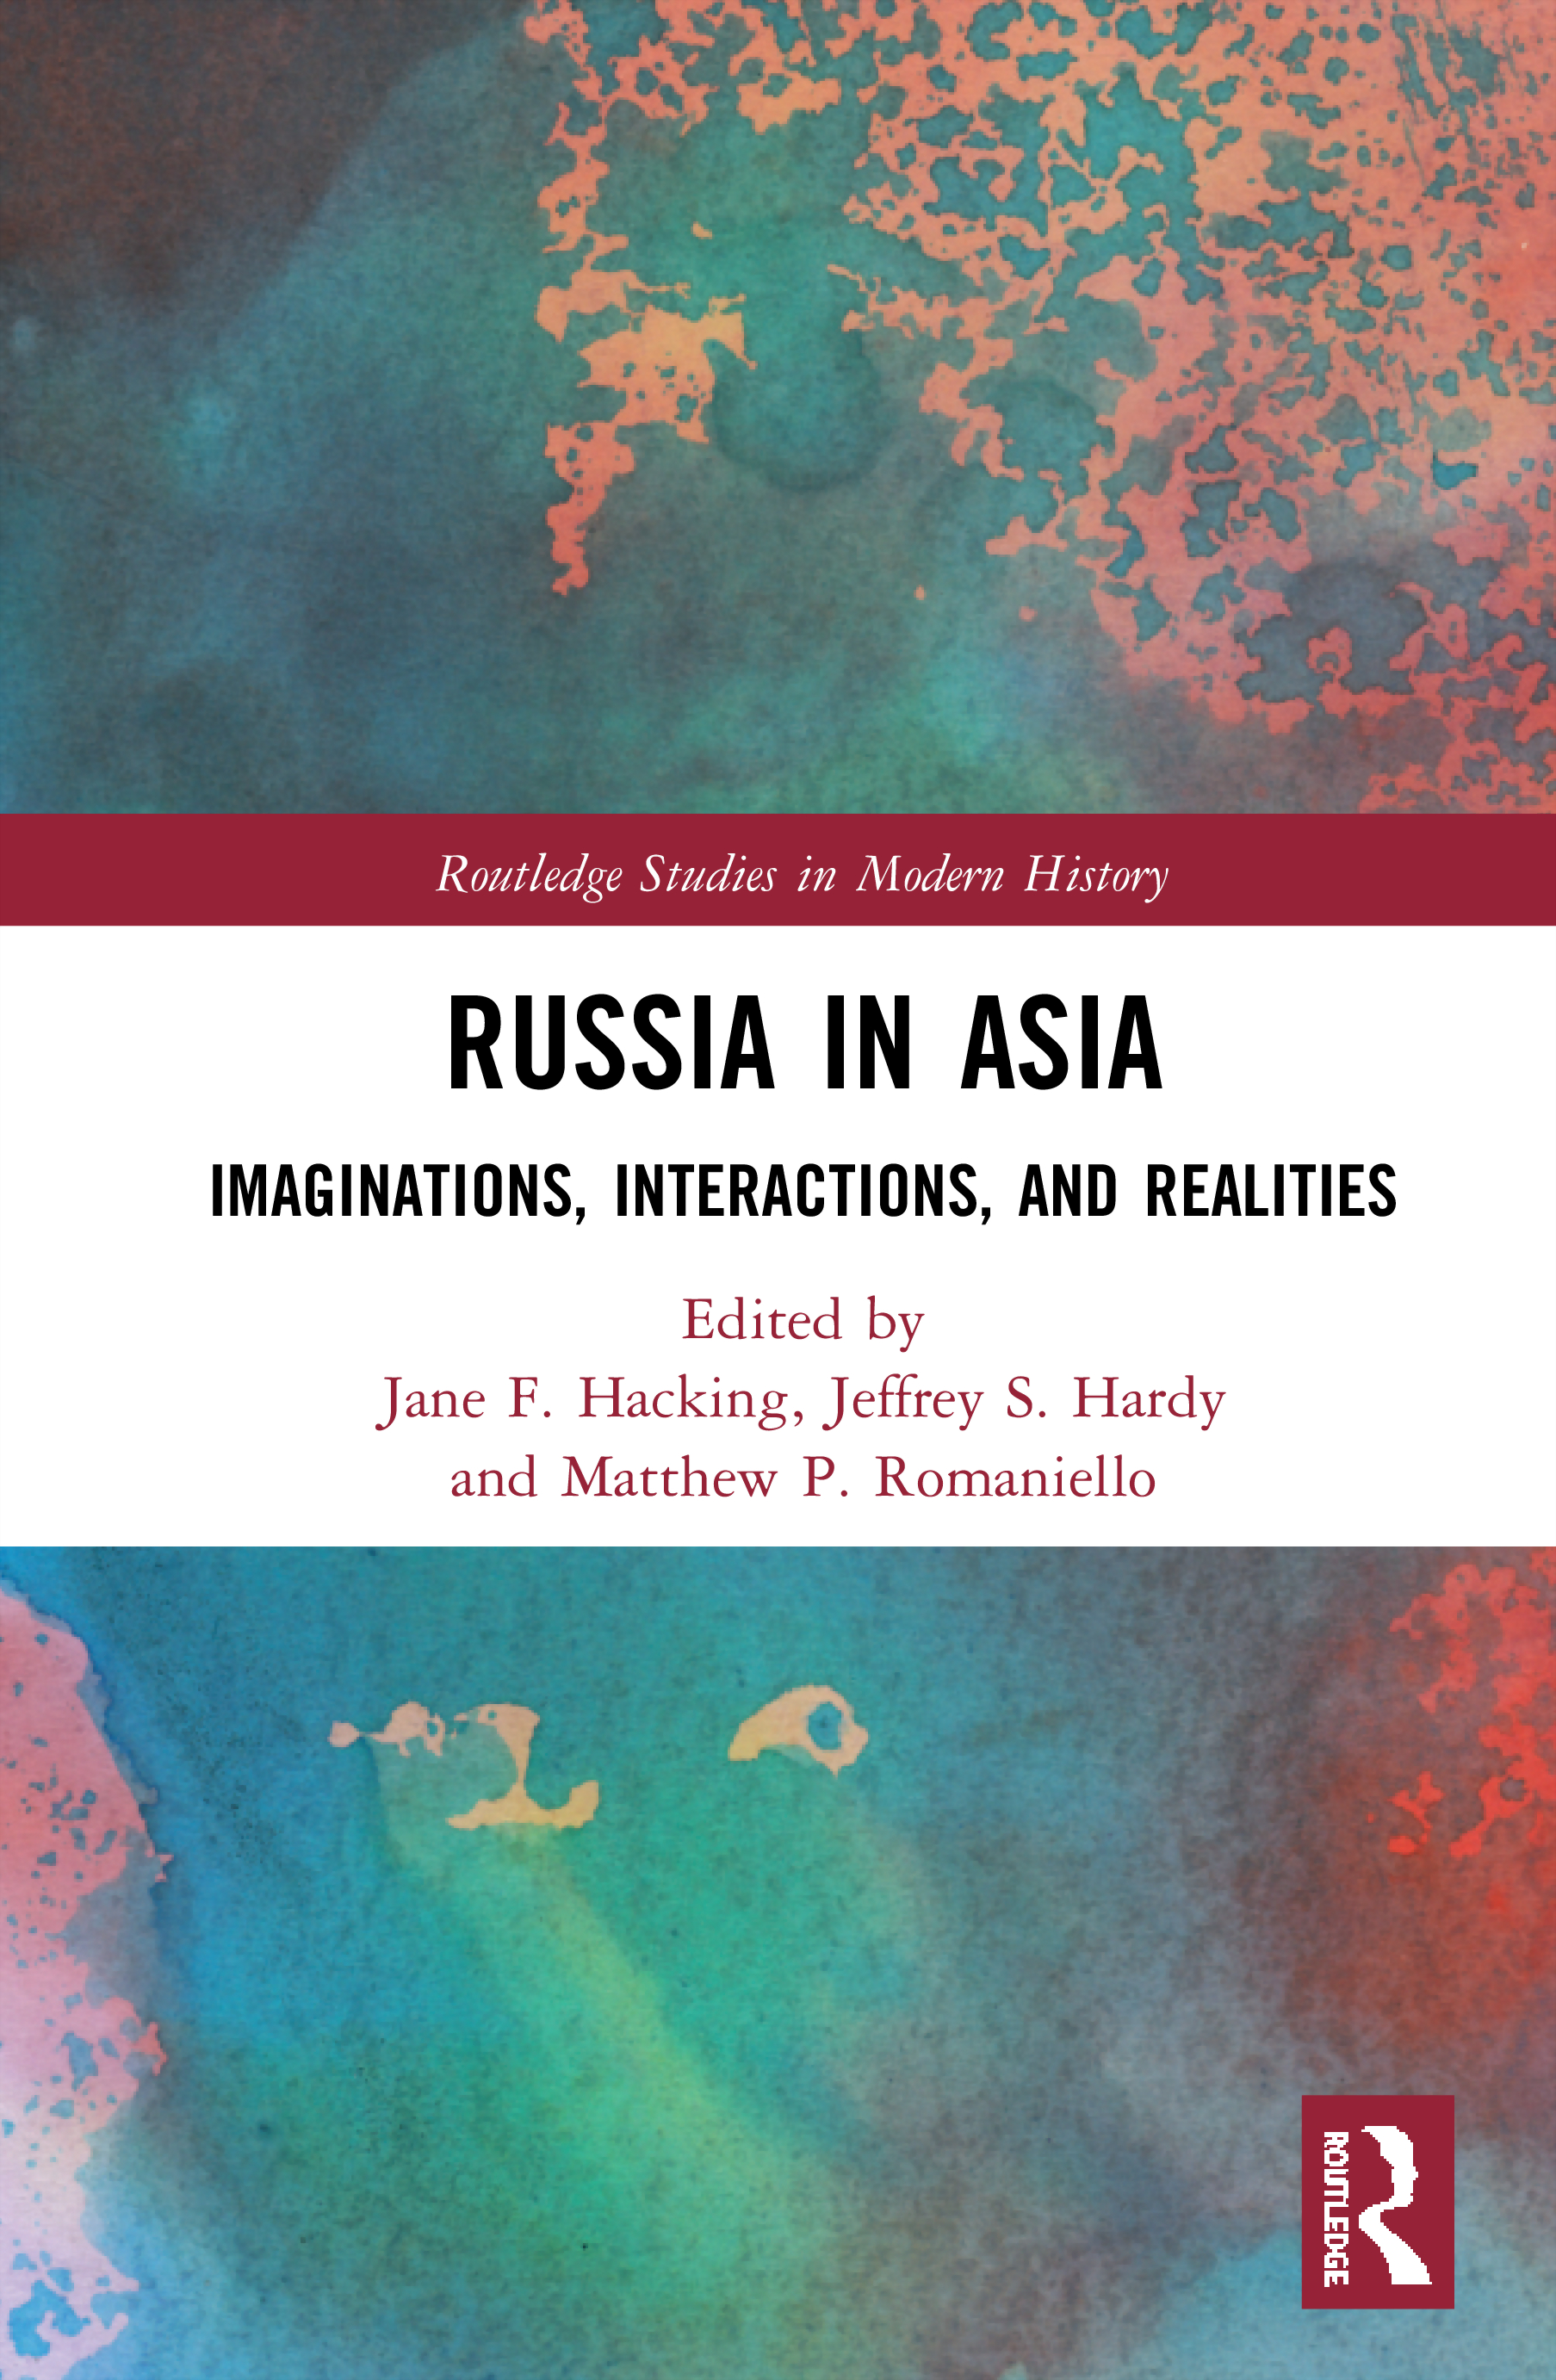 Russia in Asia: Imaginations, Interactions, and Realities book cover